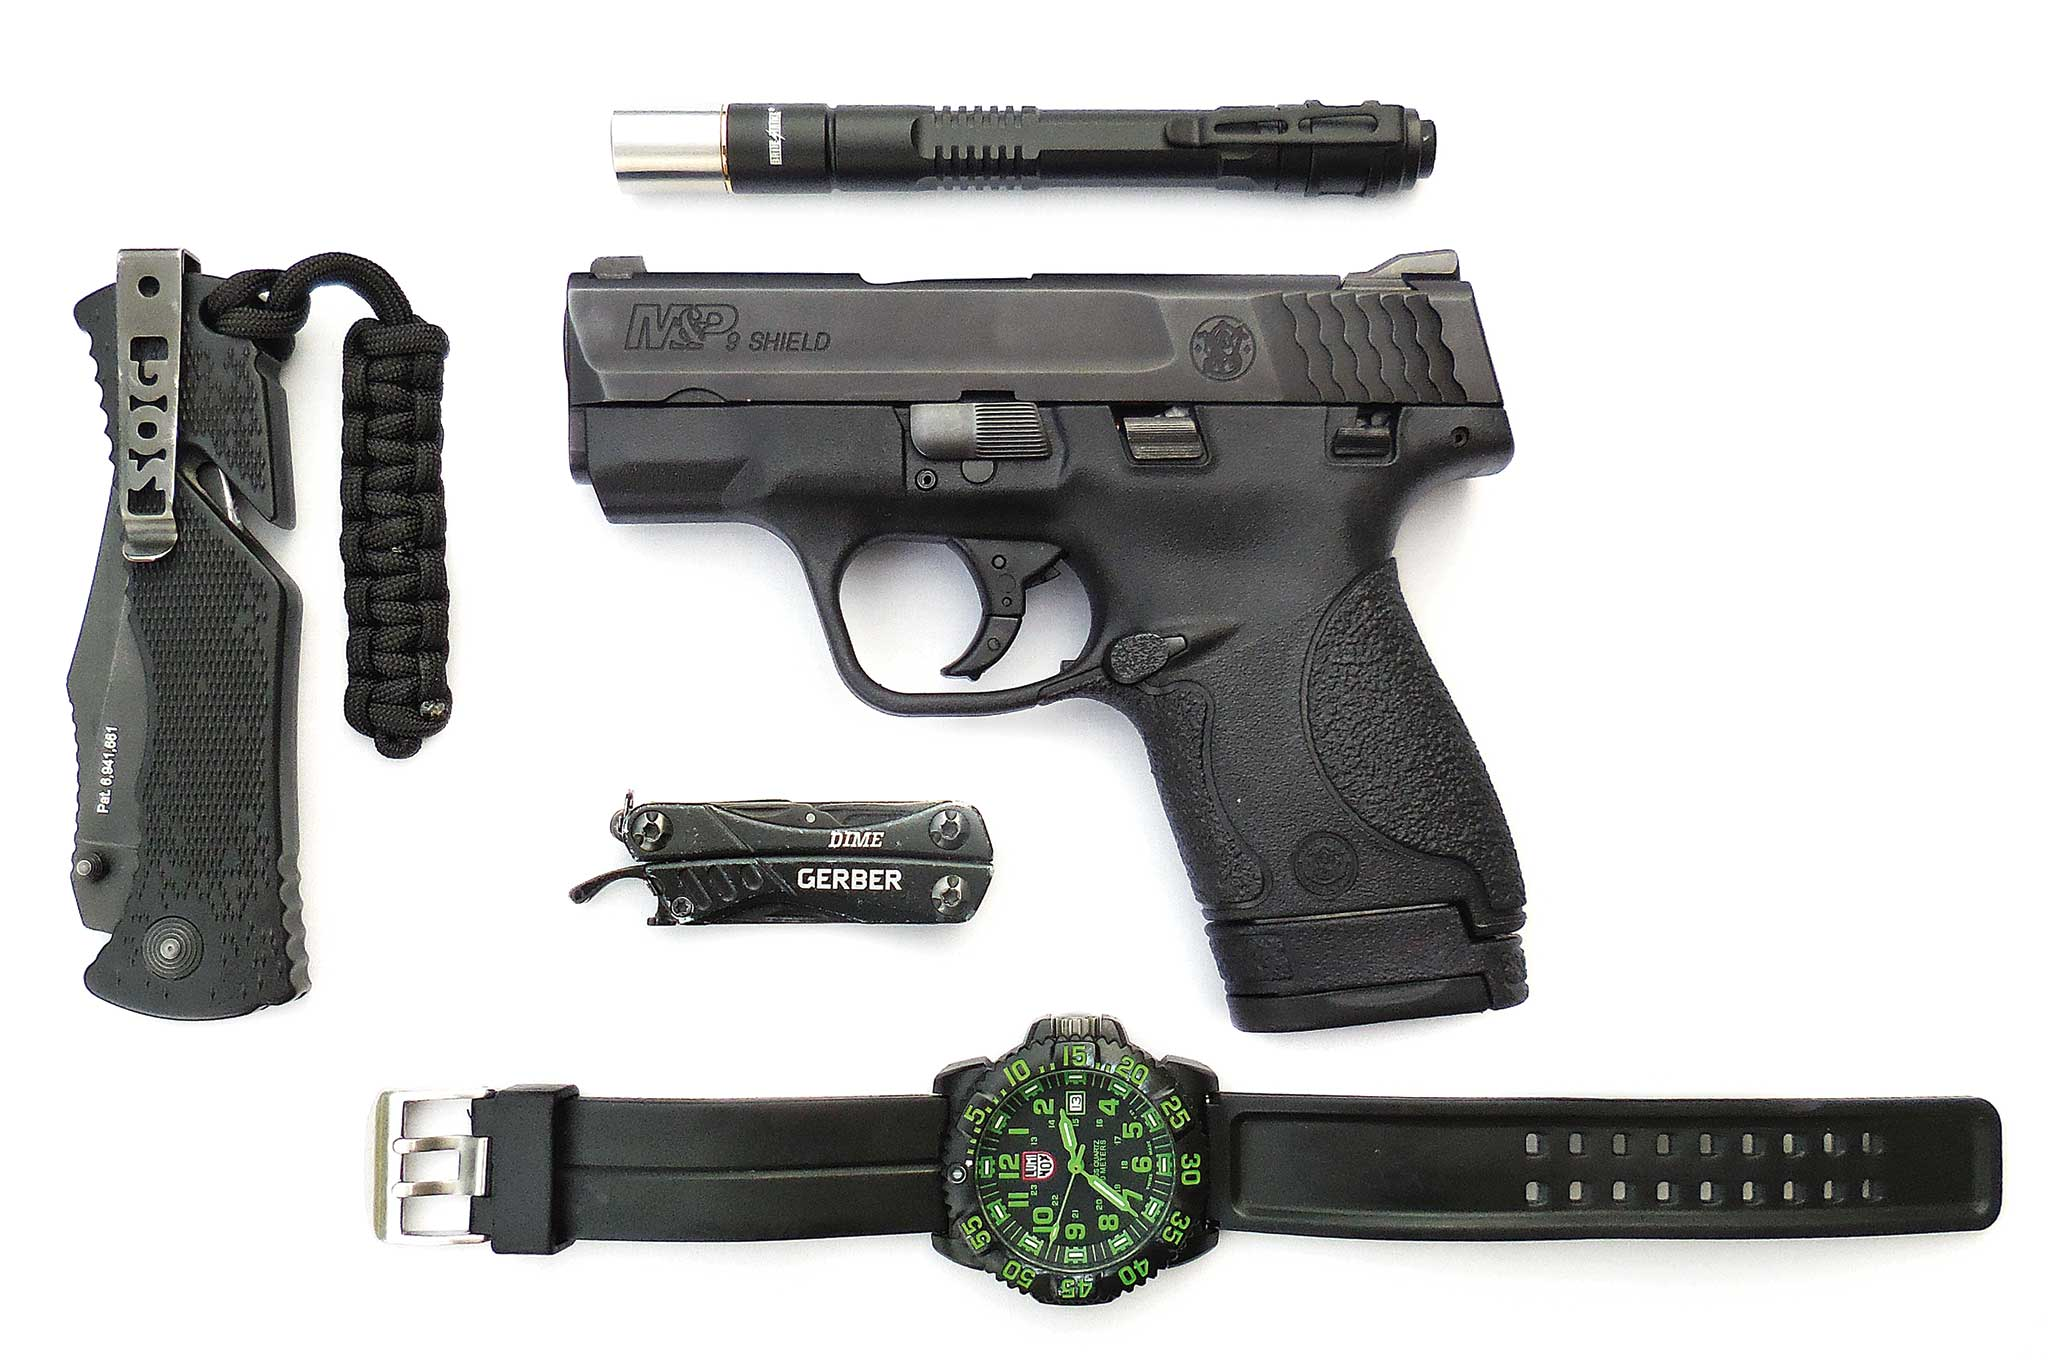 edc of the survival